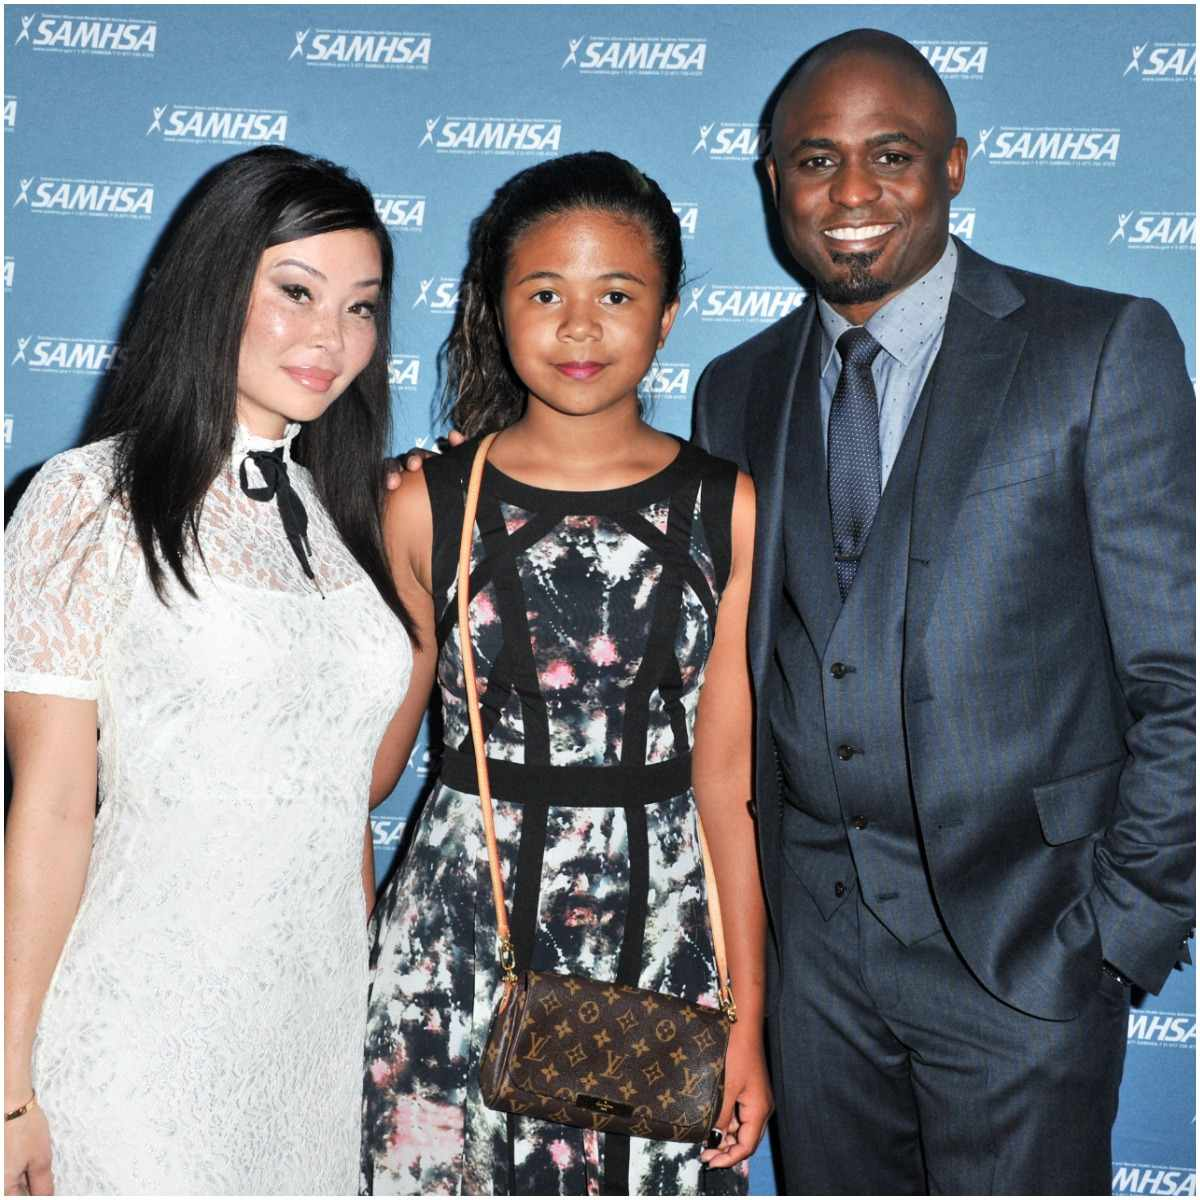 Wayne Brady with his ex-wife and daughter